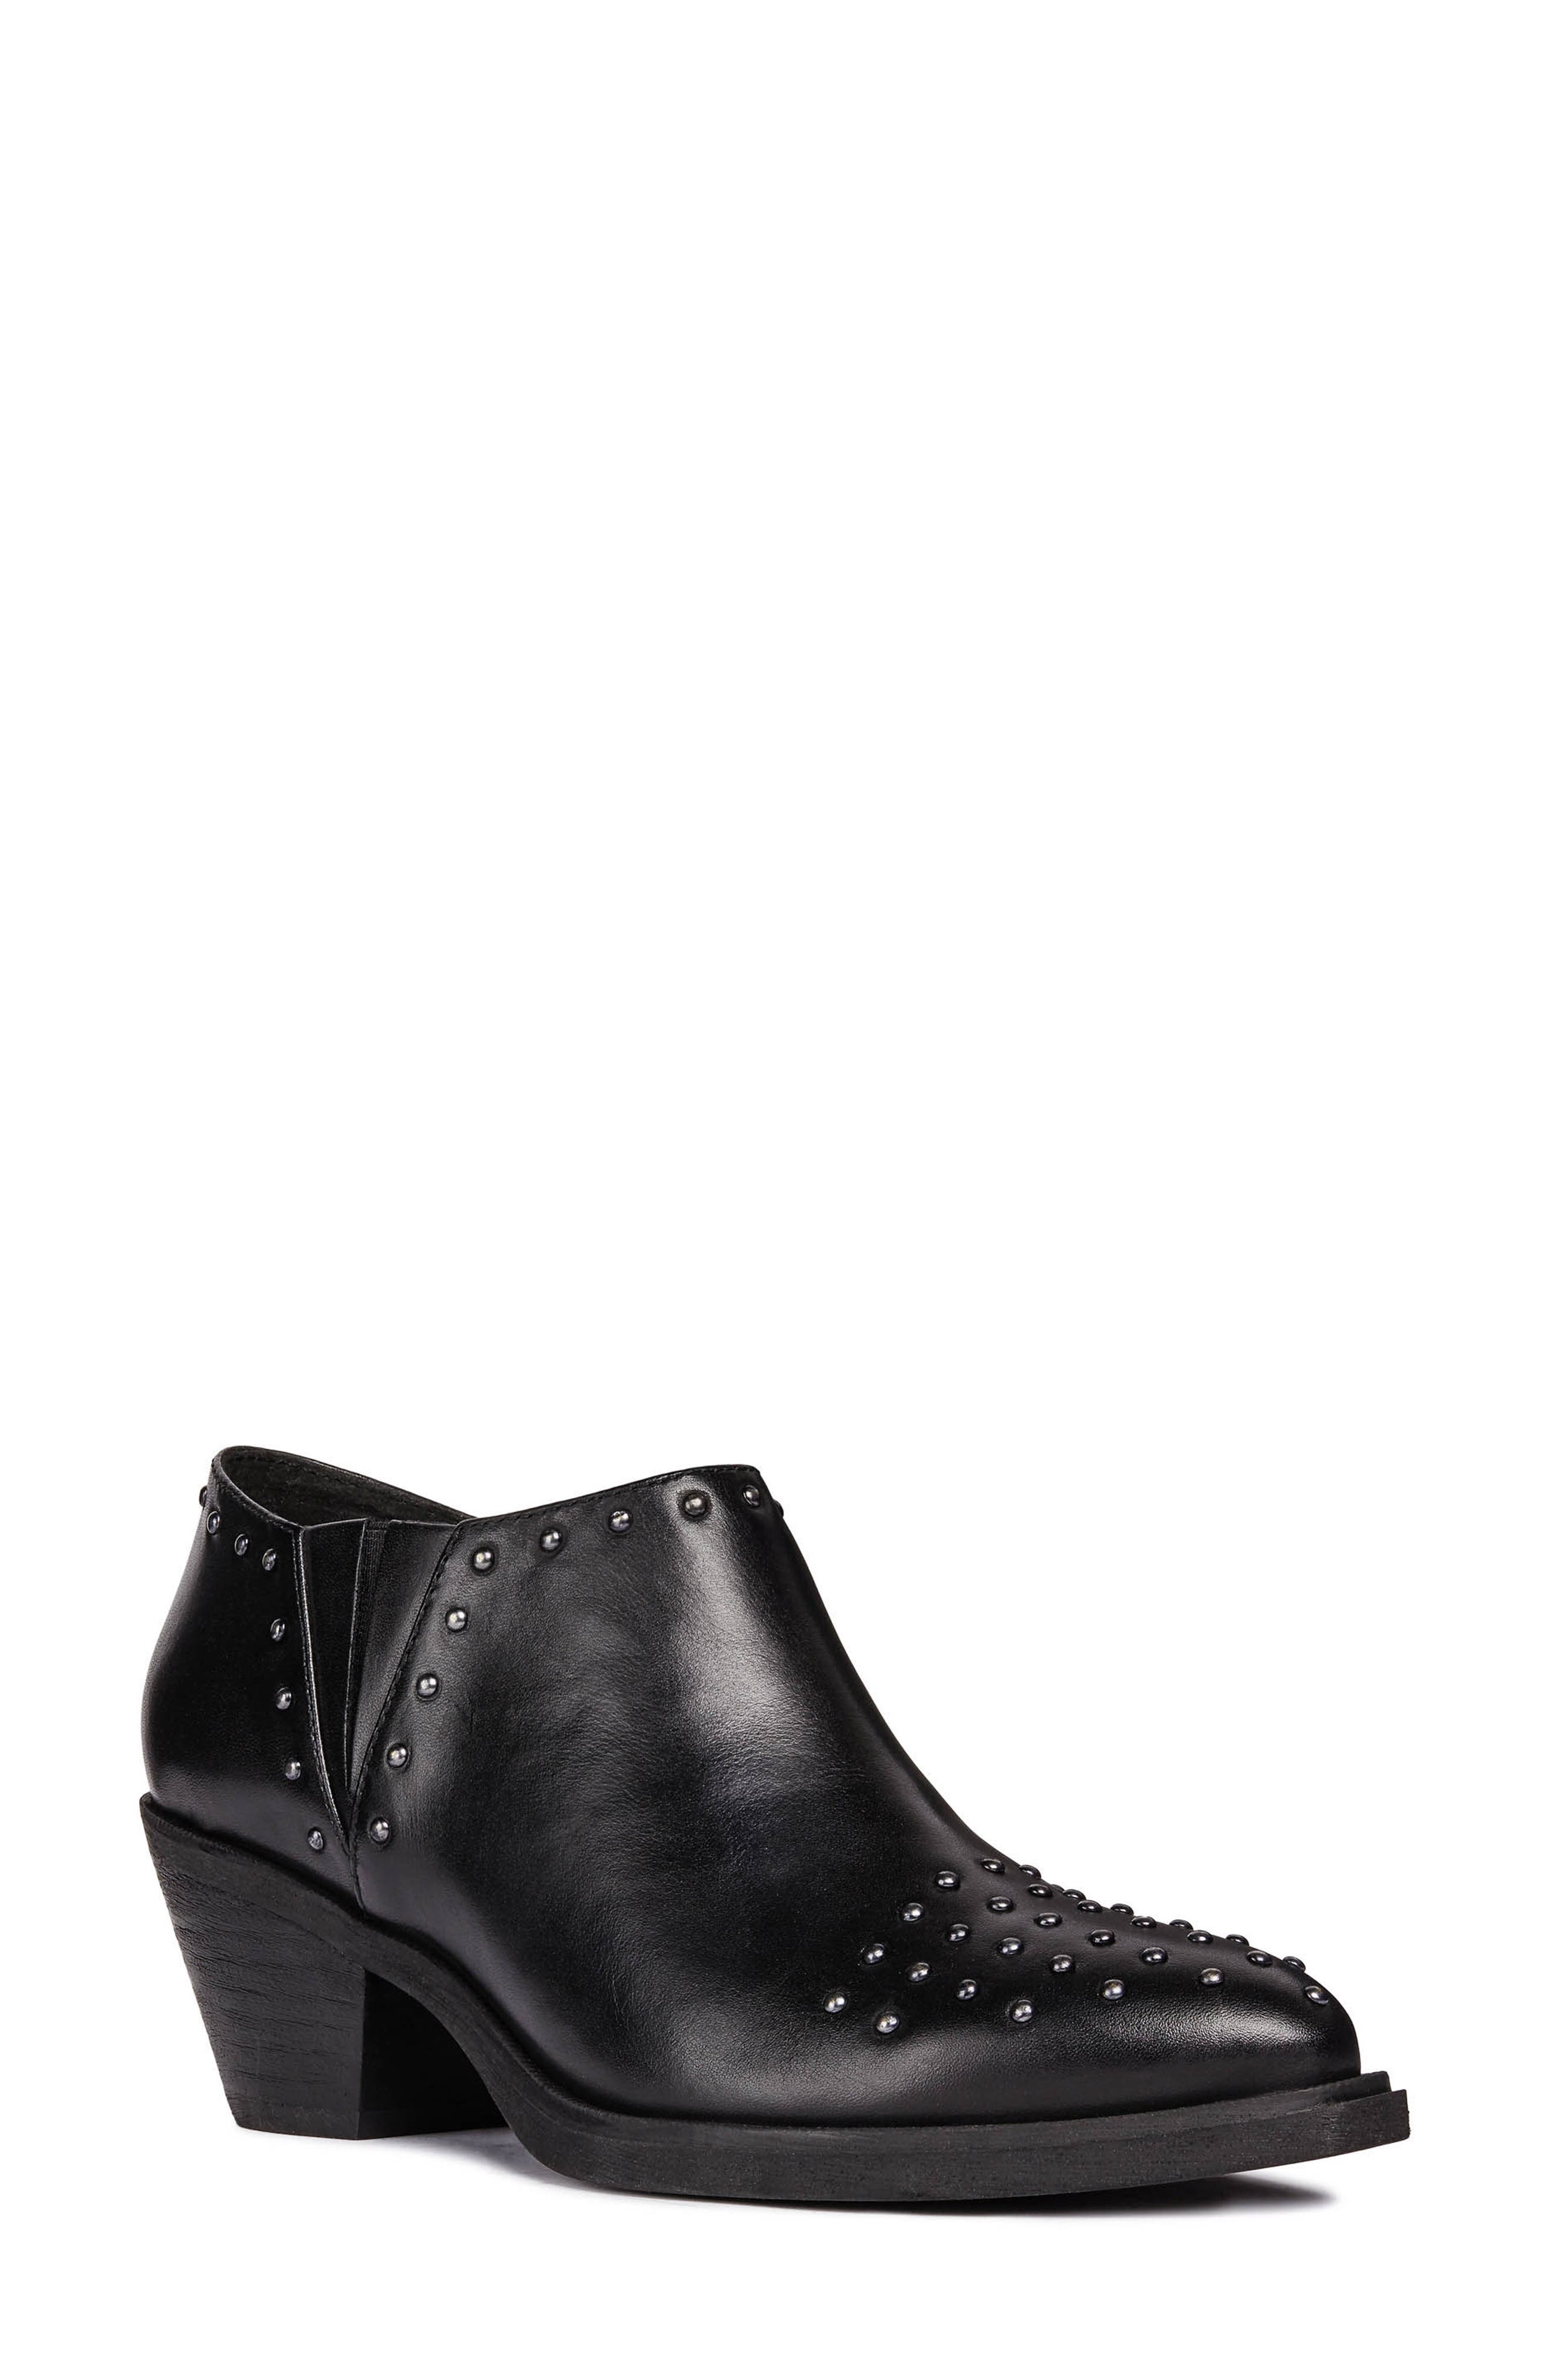 Lovai Ankle Boot,                             Main thumbnail 1, color,                             BLACK LEATHER